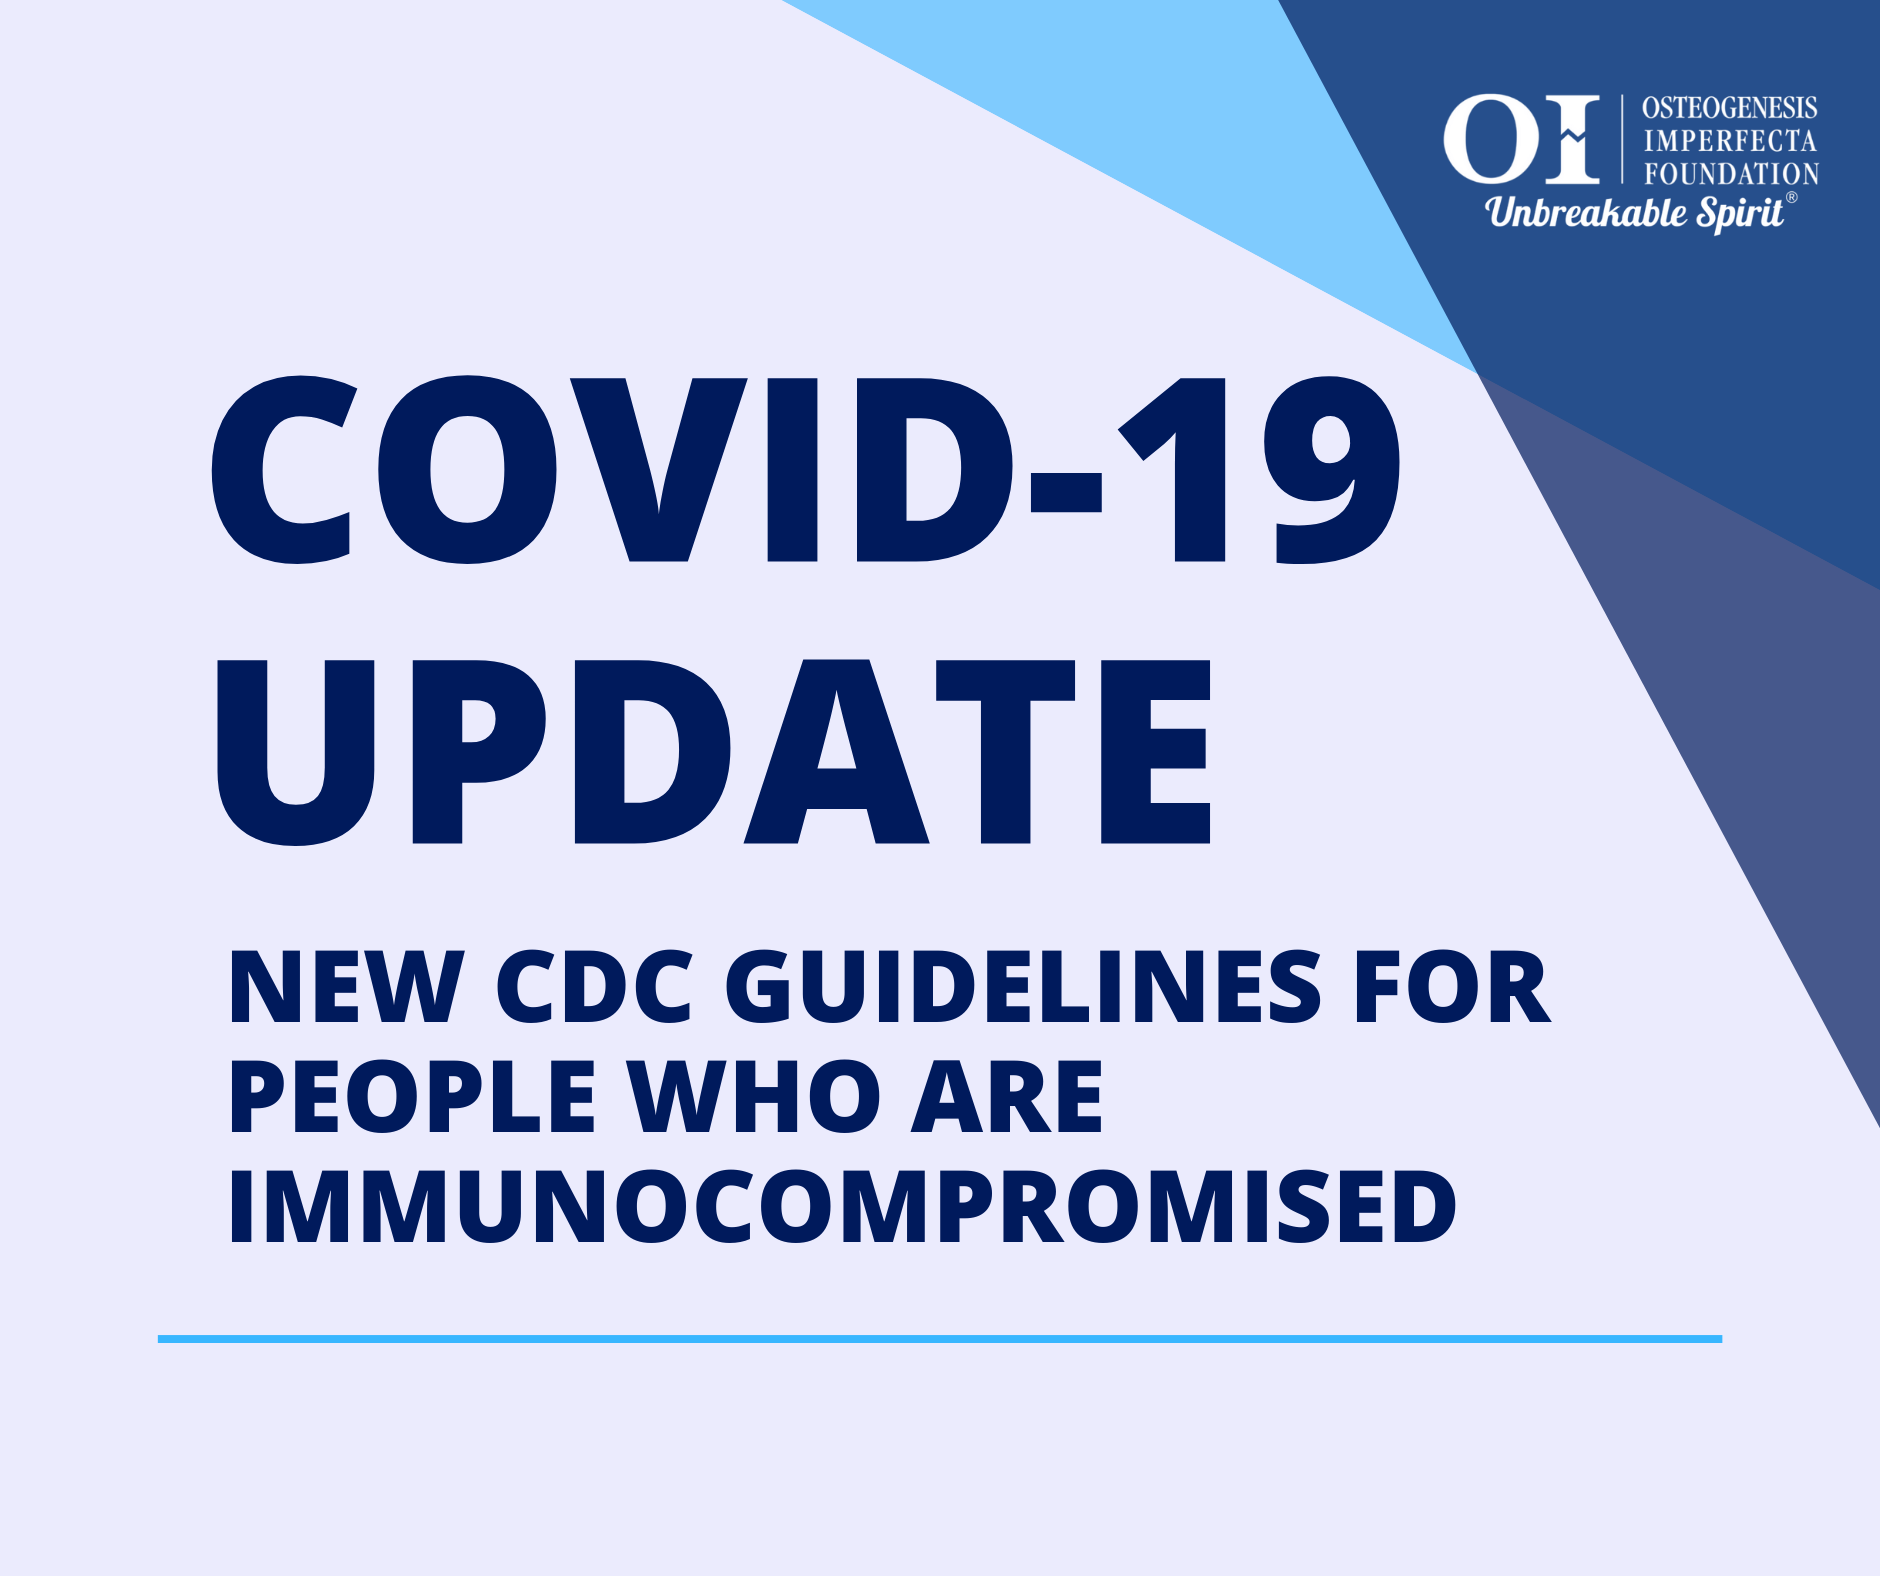 New CDC Guidelines for People who are Immunocompromised